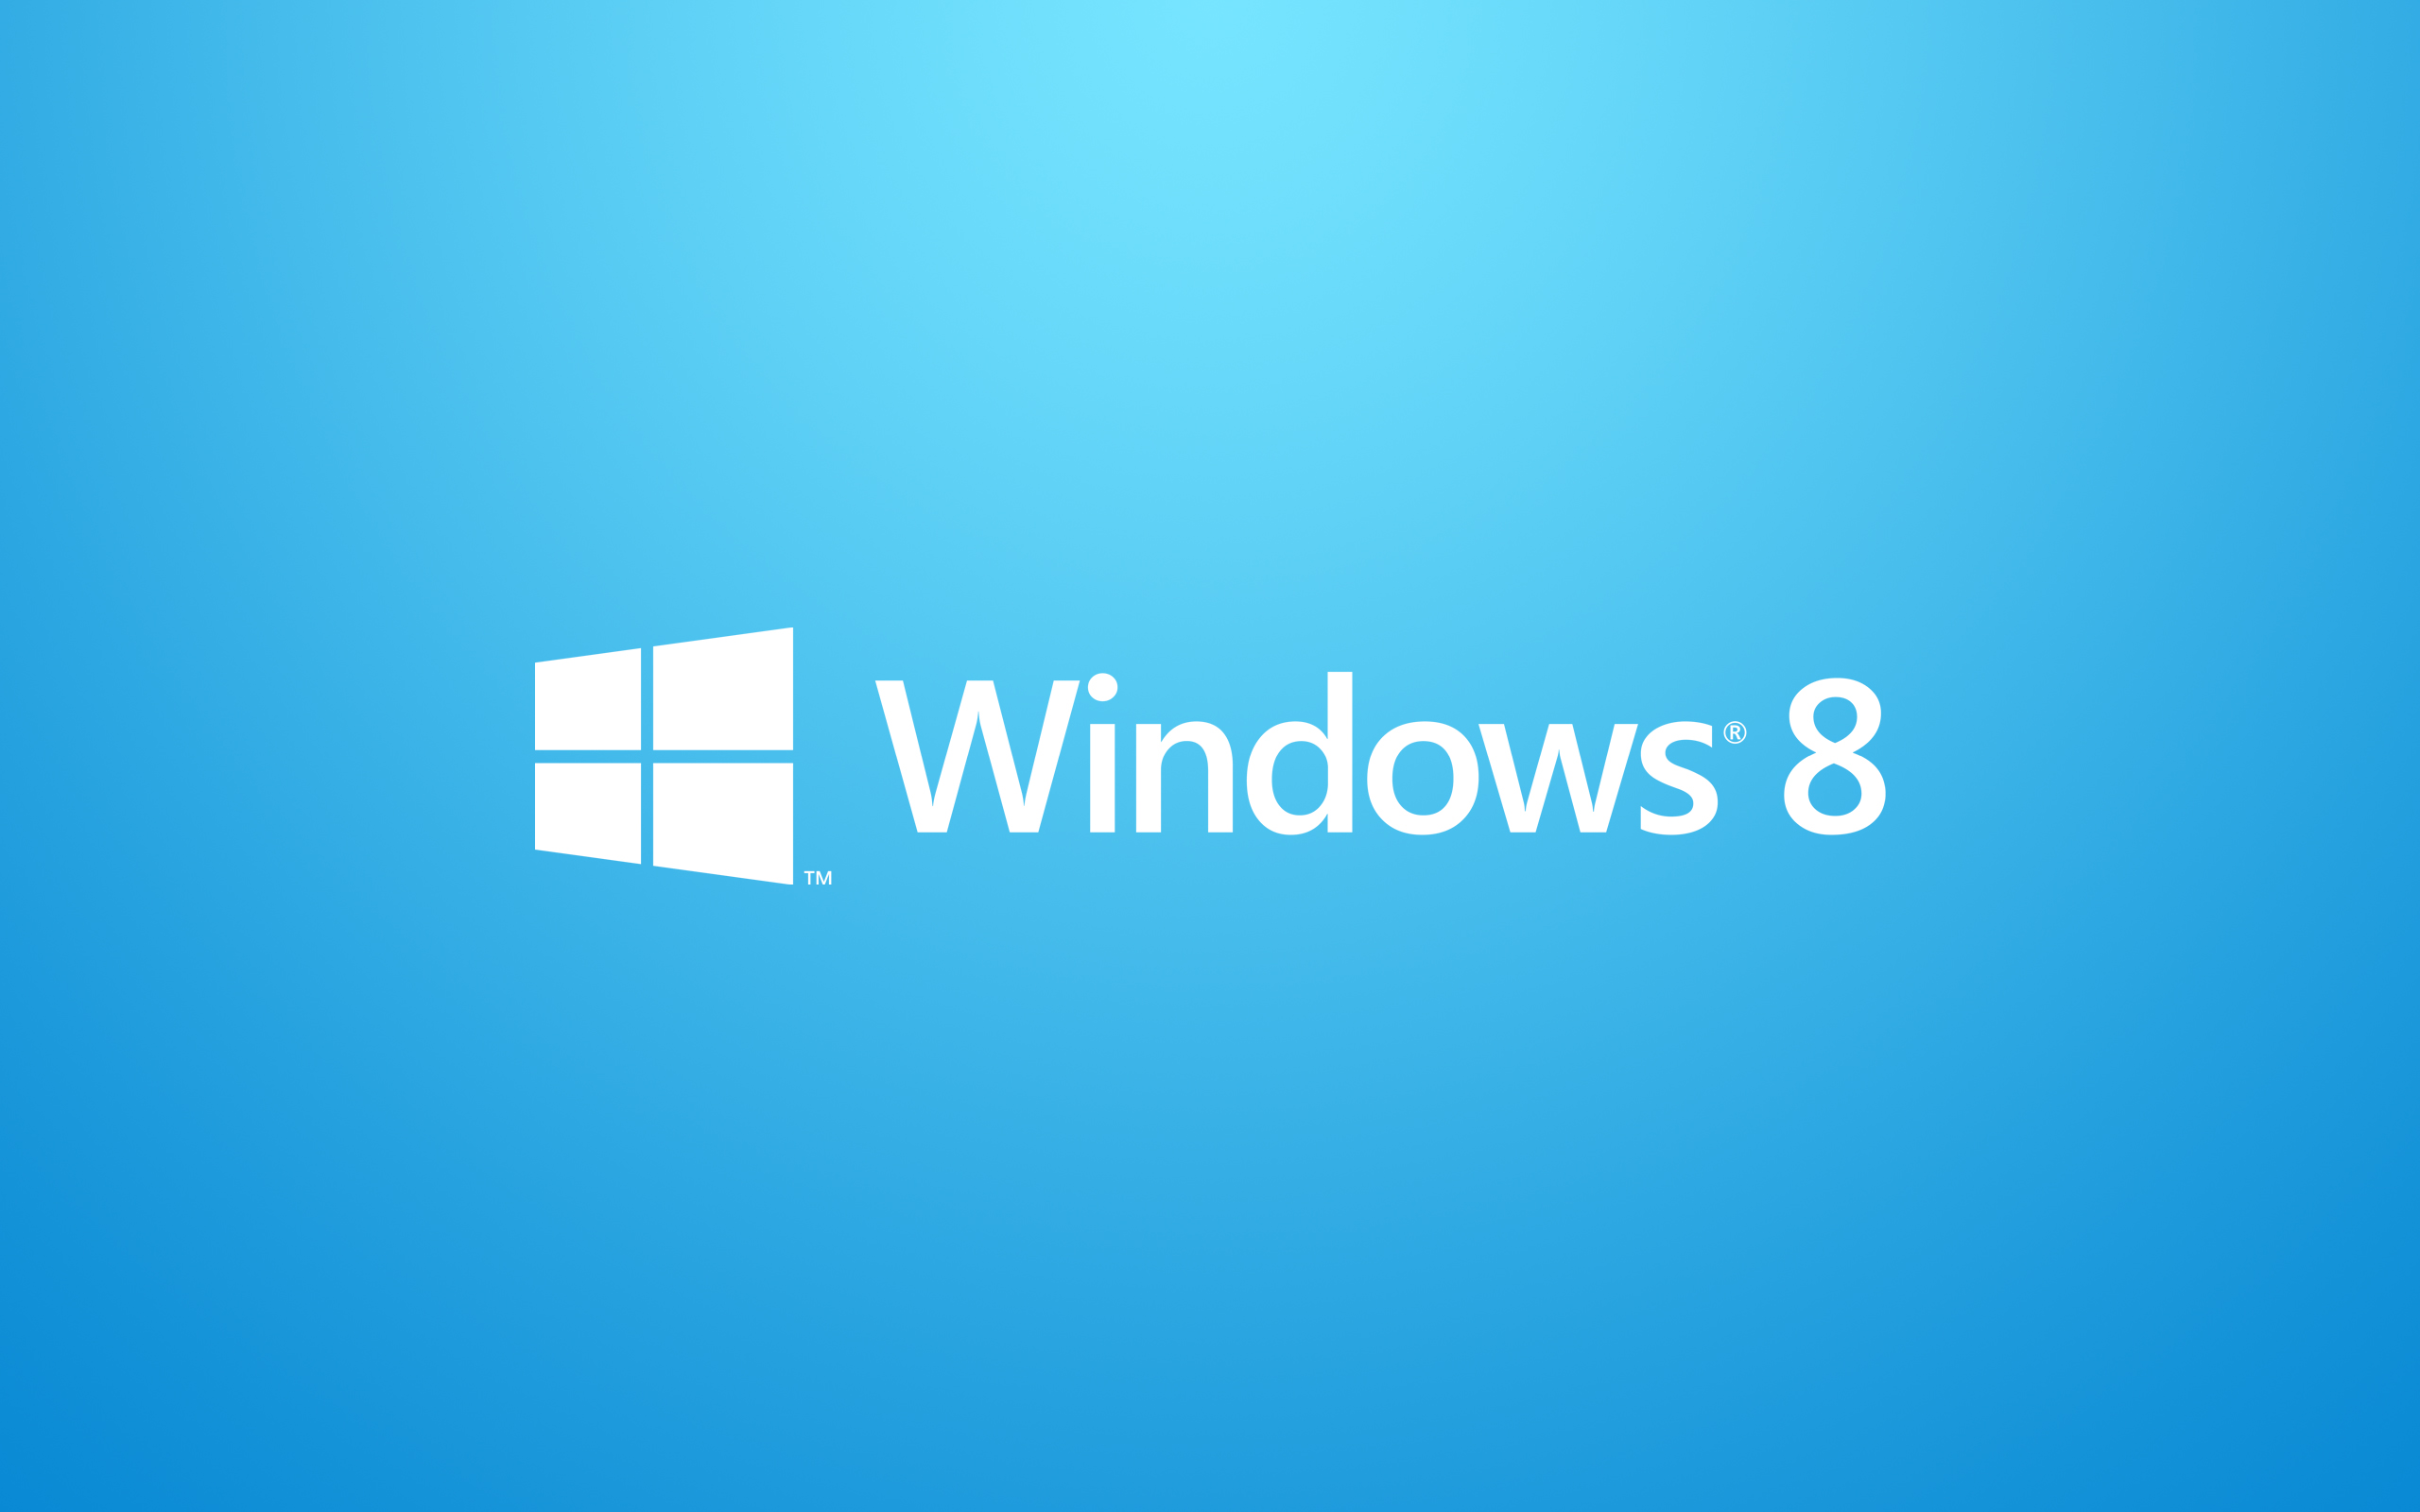 Learn some basic ways to improve your system performance in Windows 8.